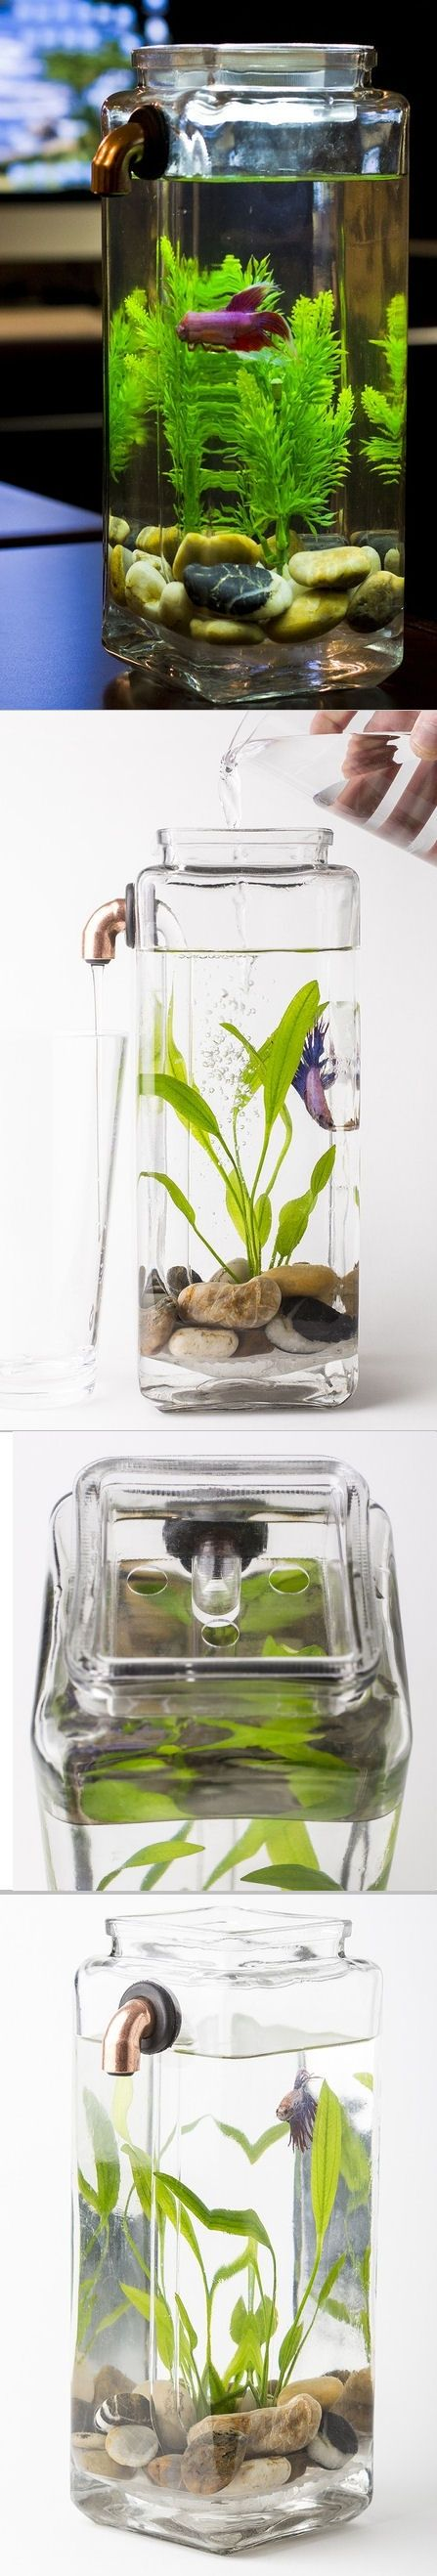 The 25 best betta fish tank ideas on pinterest betta for Best place to buy betta fish